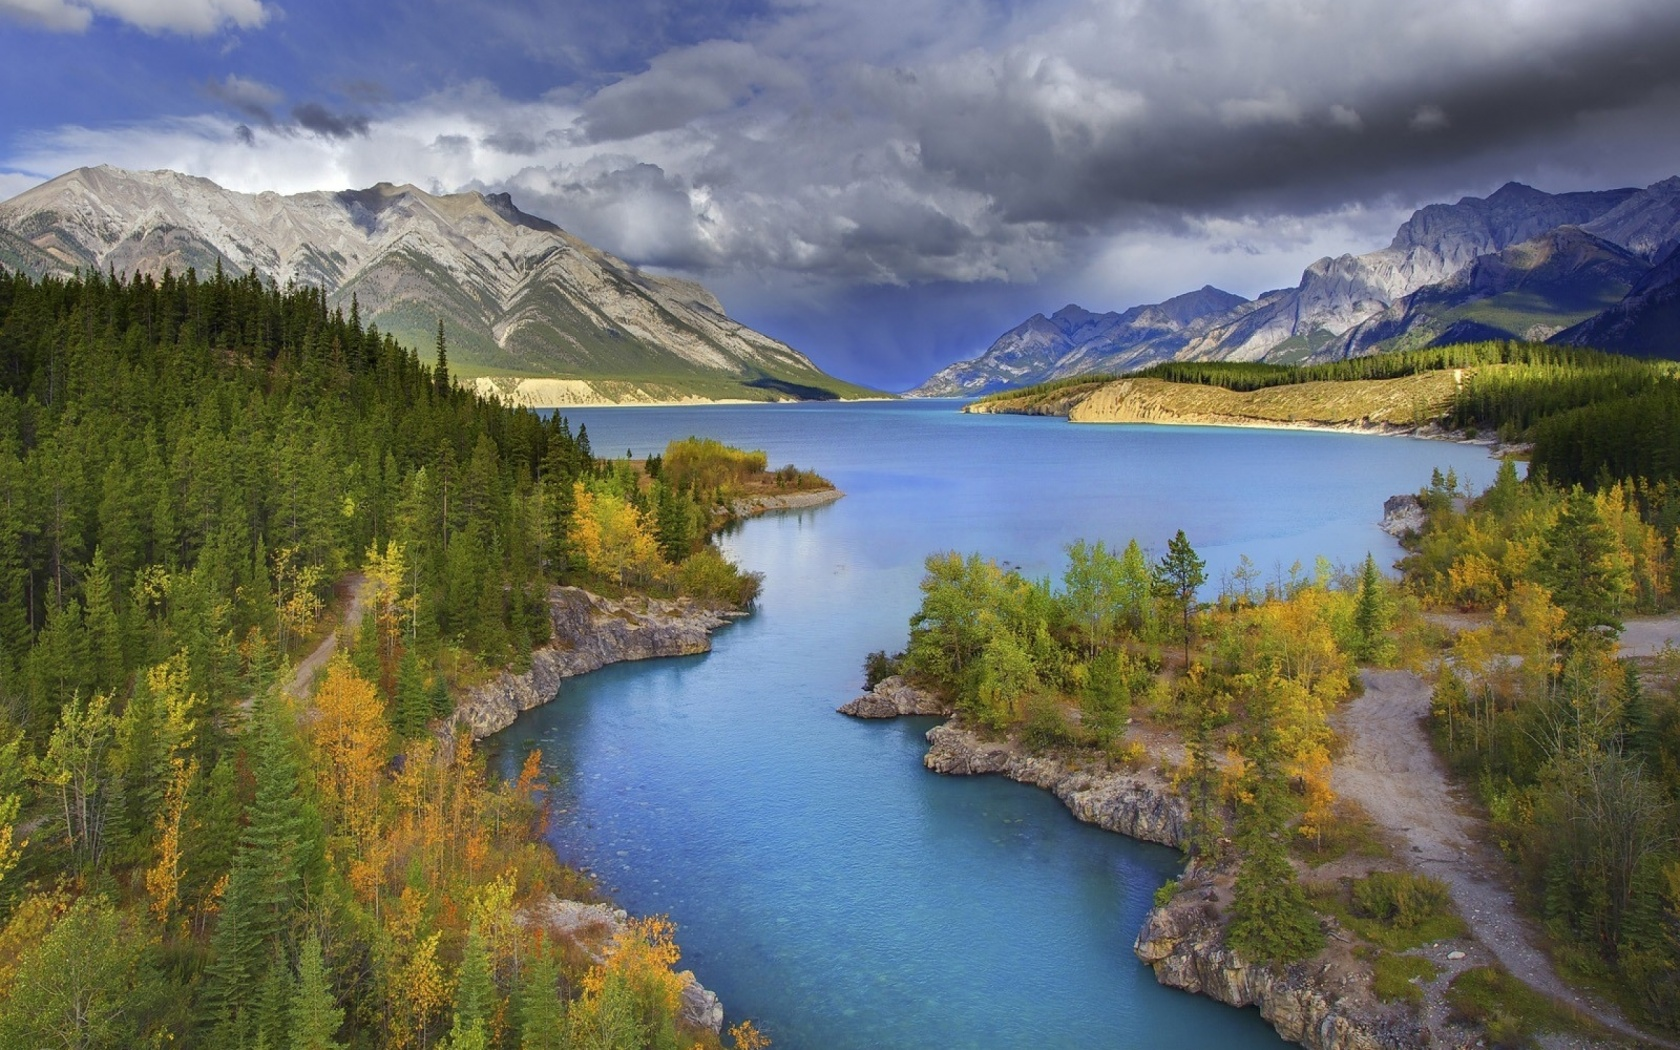 1680x1050 Alberta Banff National Park desktop PC and Mac wallpaper 1680x1050